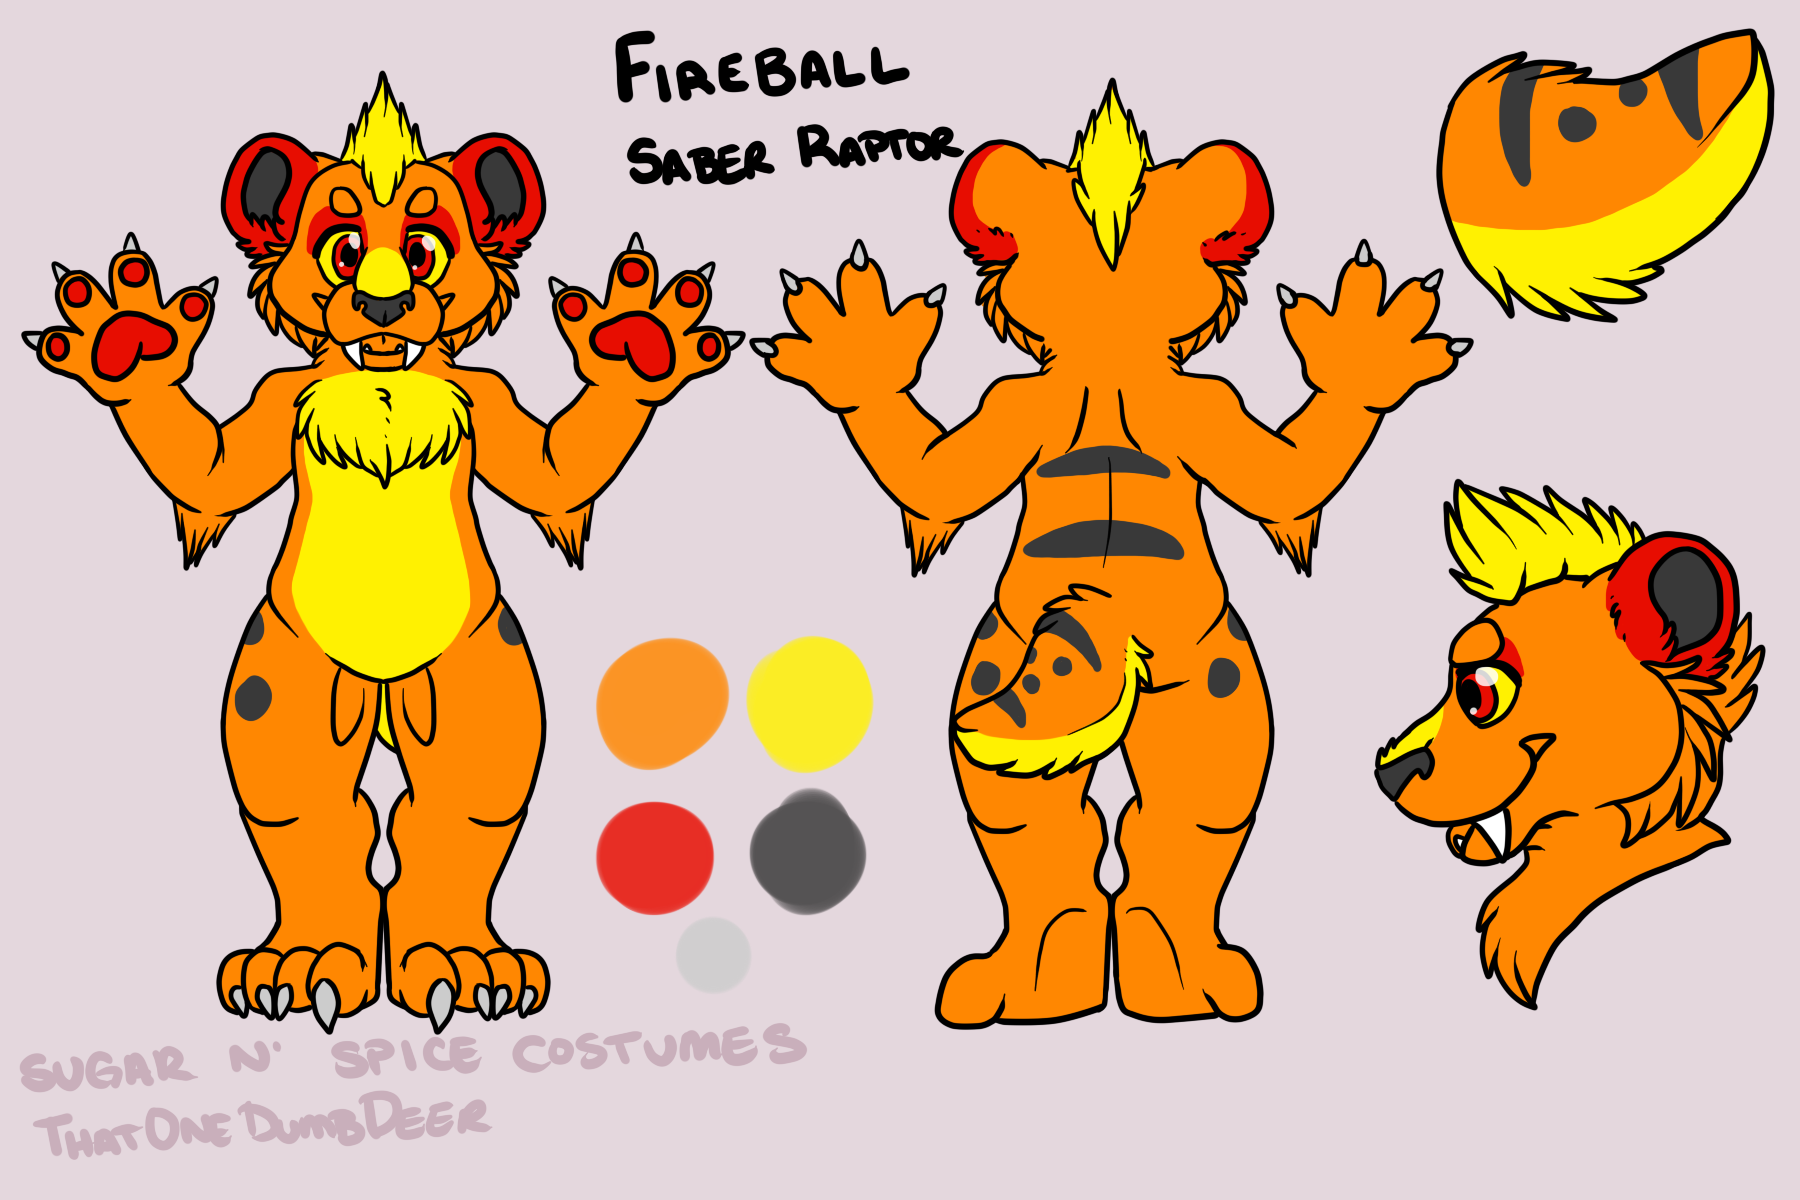 Fire ball Saber Raptor - $1850 Plantigrade Full suit$2100 Didgigrade Full suit. This suit will include a badge from Lilbobleat